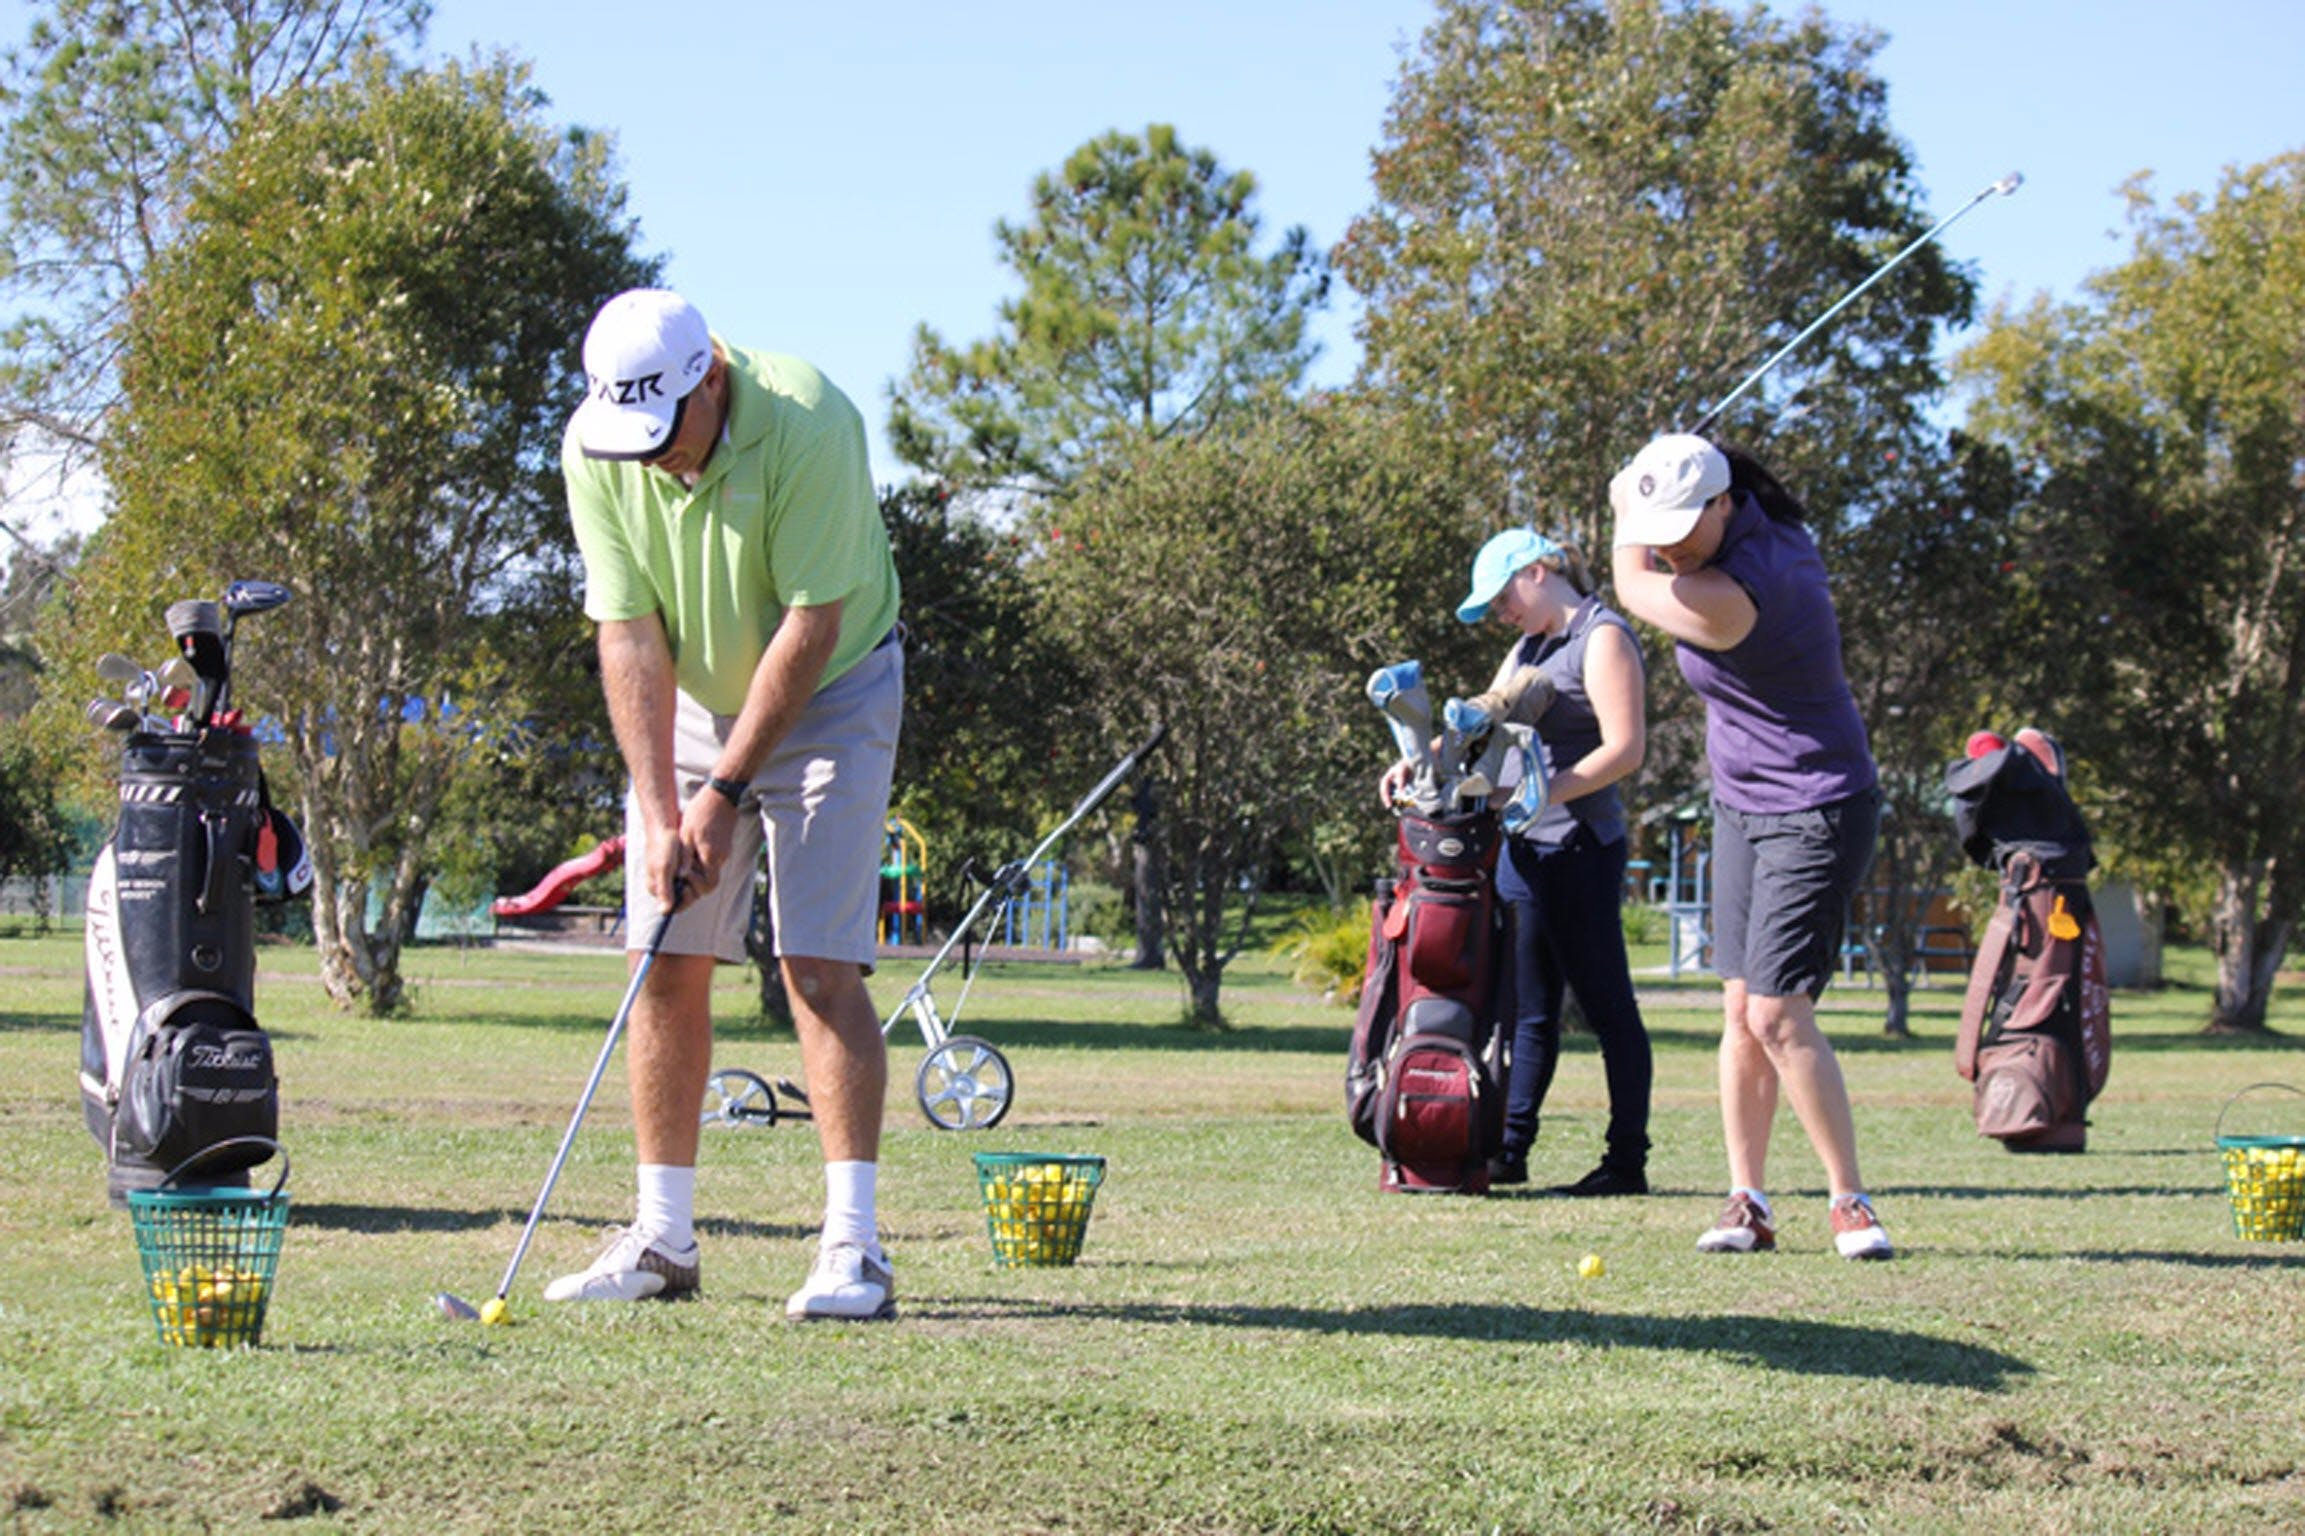 Nambucca River Golf Driving Range - Sydney Tourism